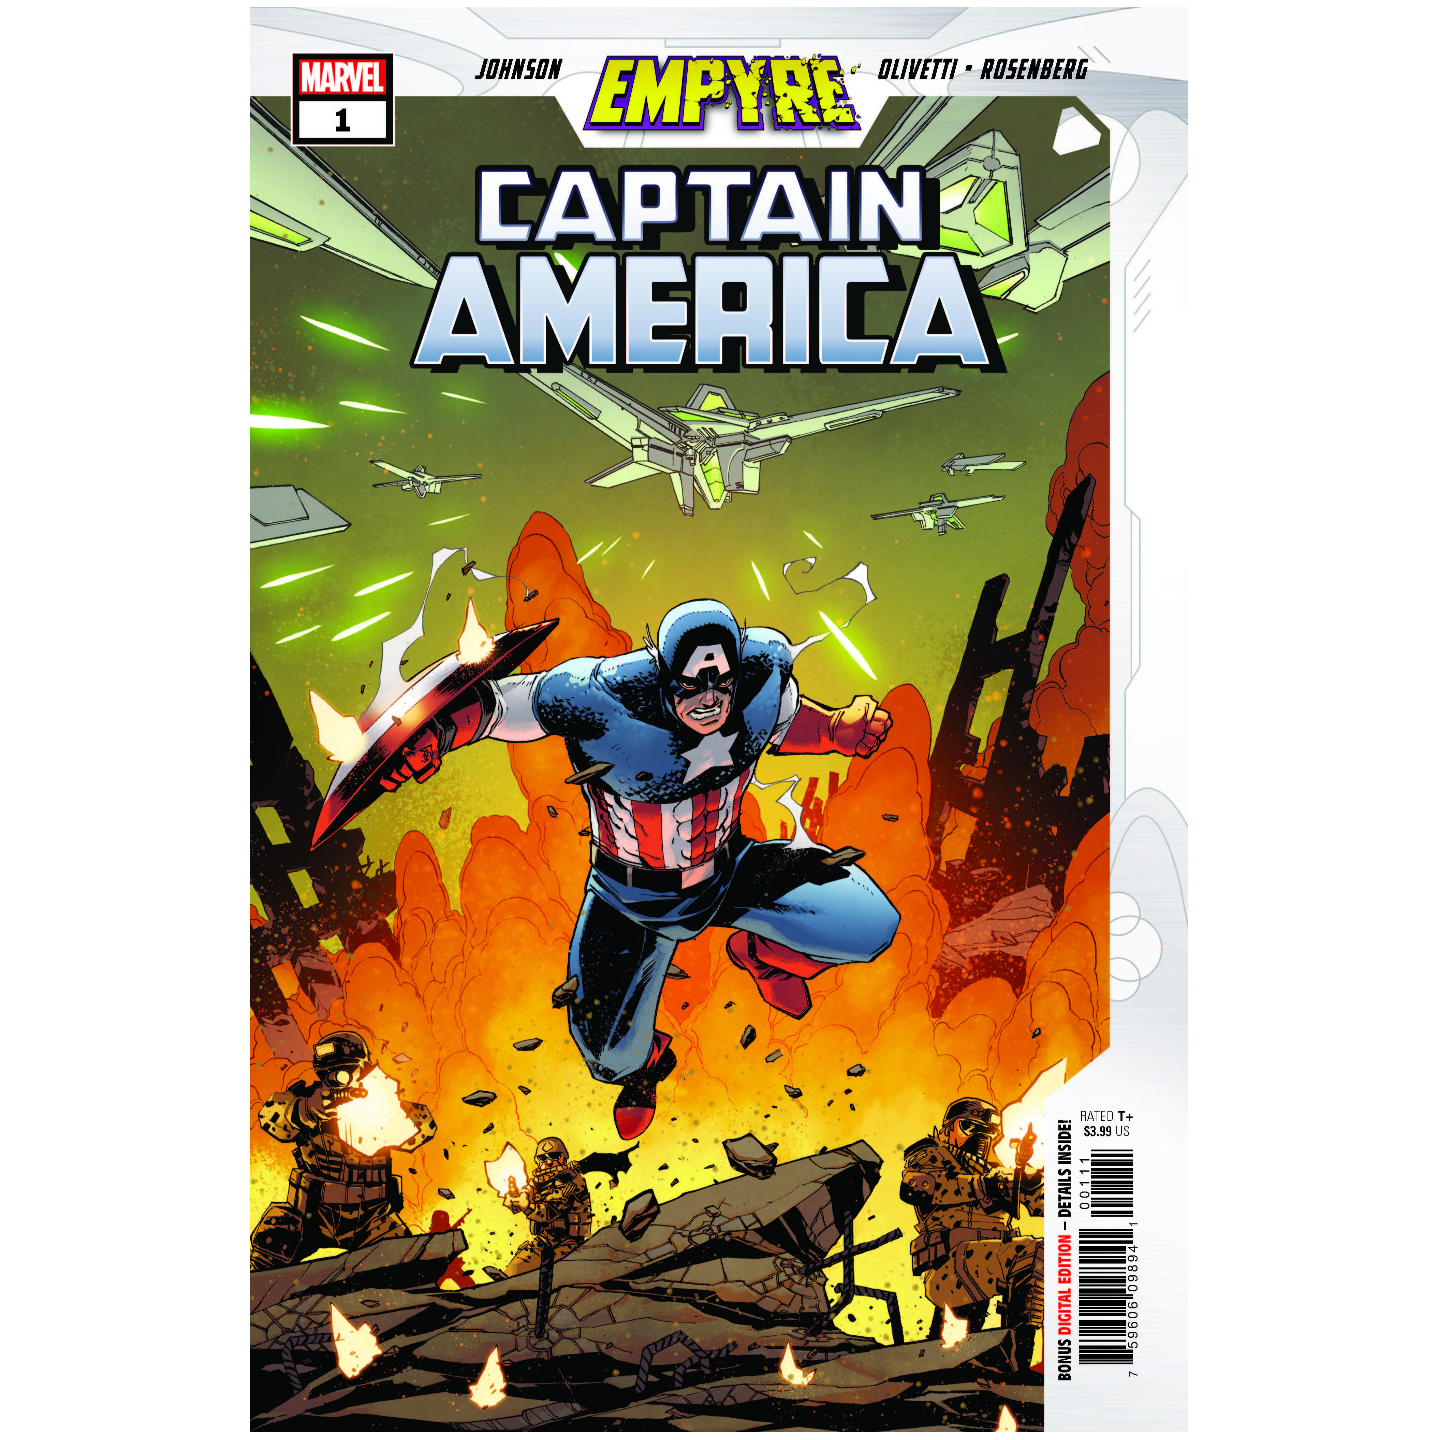 EMPYRE CAPTAIN AMERICA #1 (OF 3)